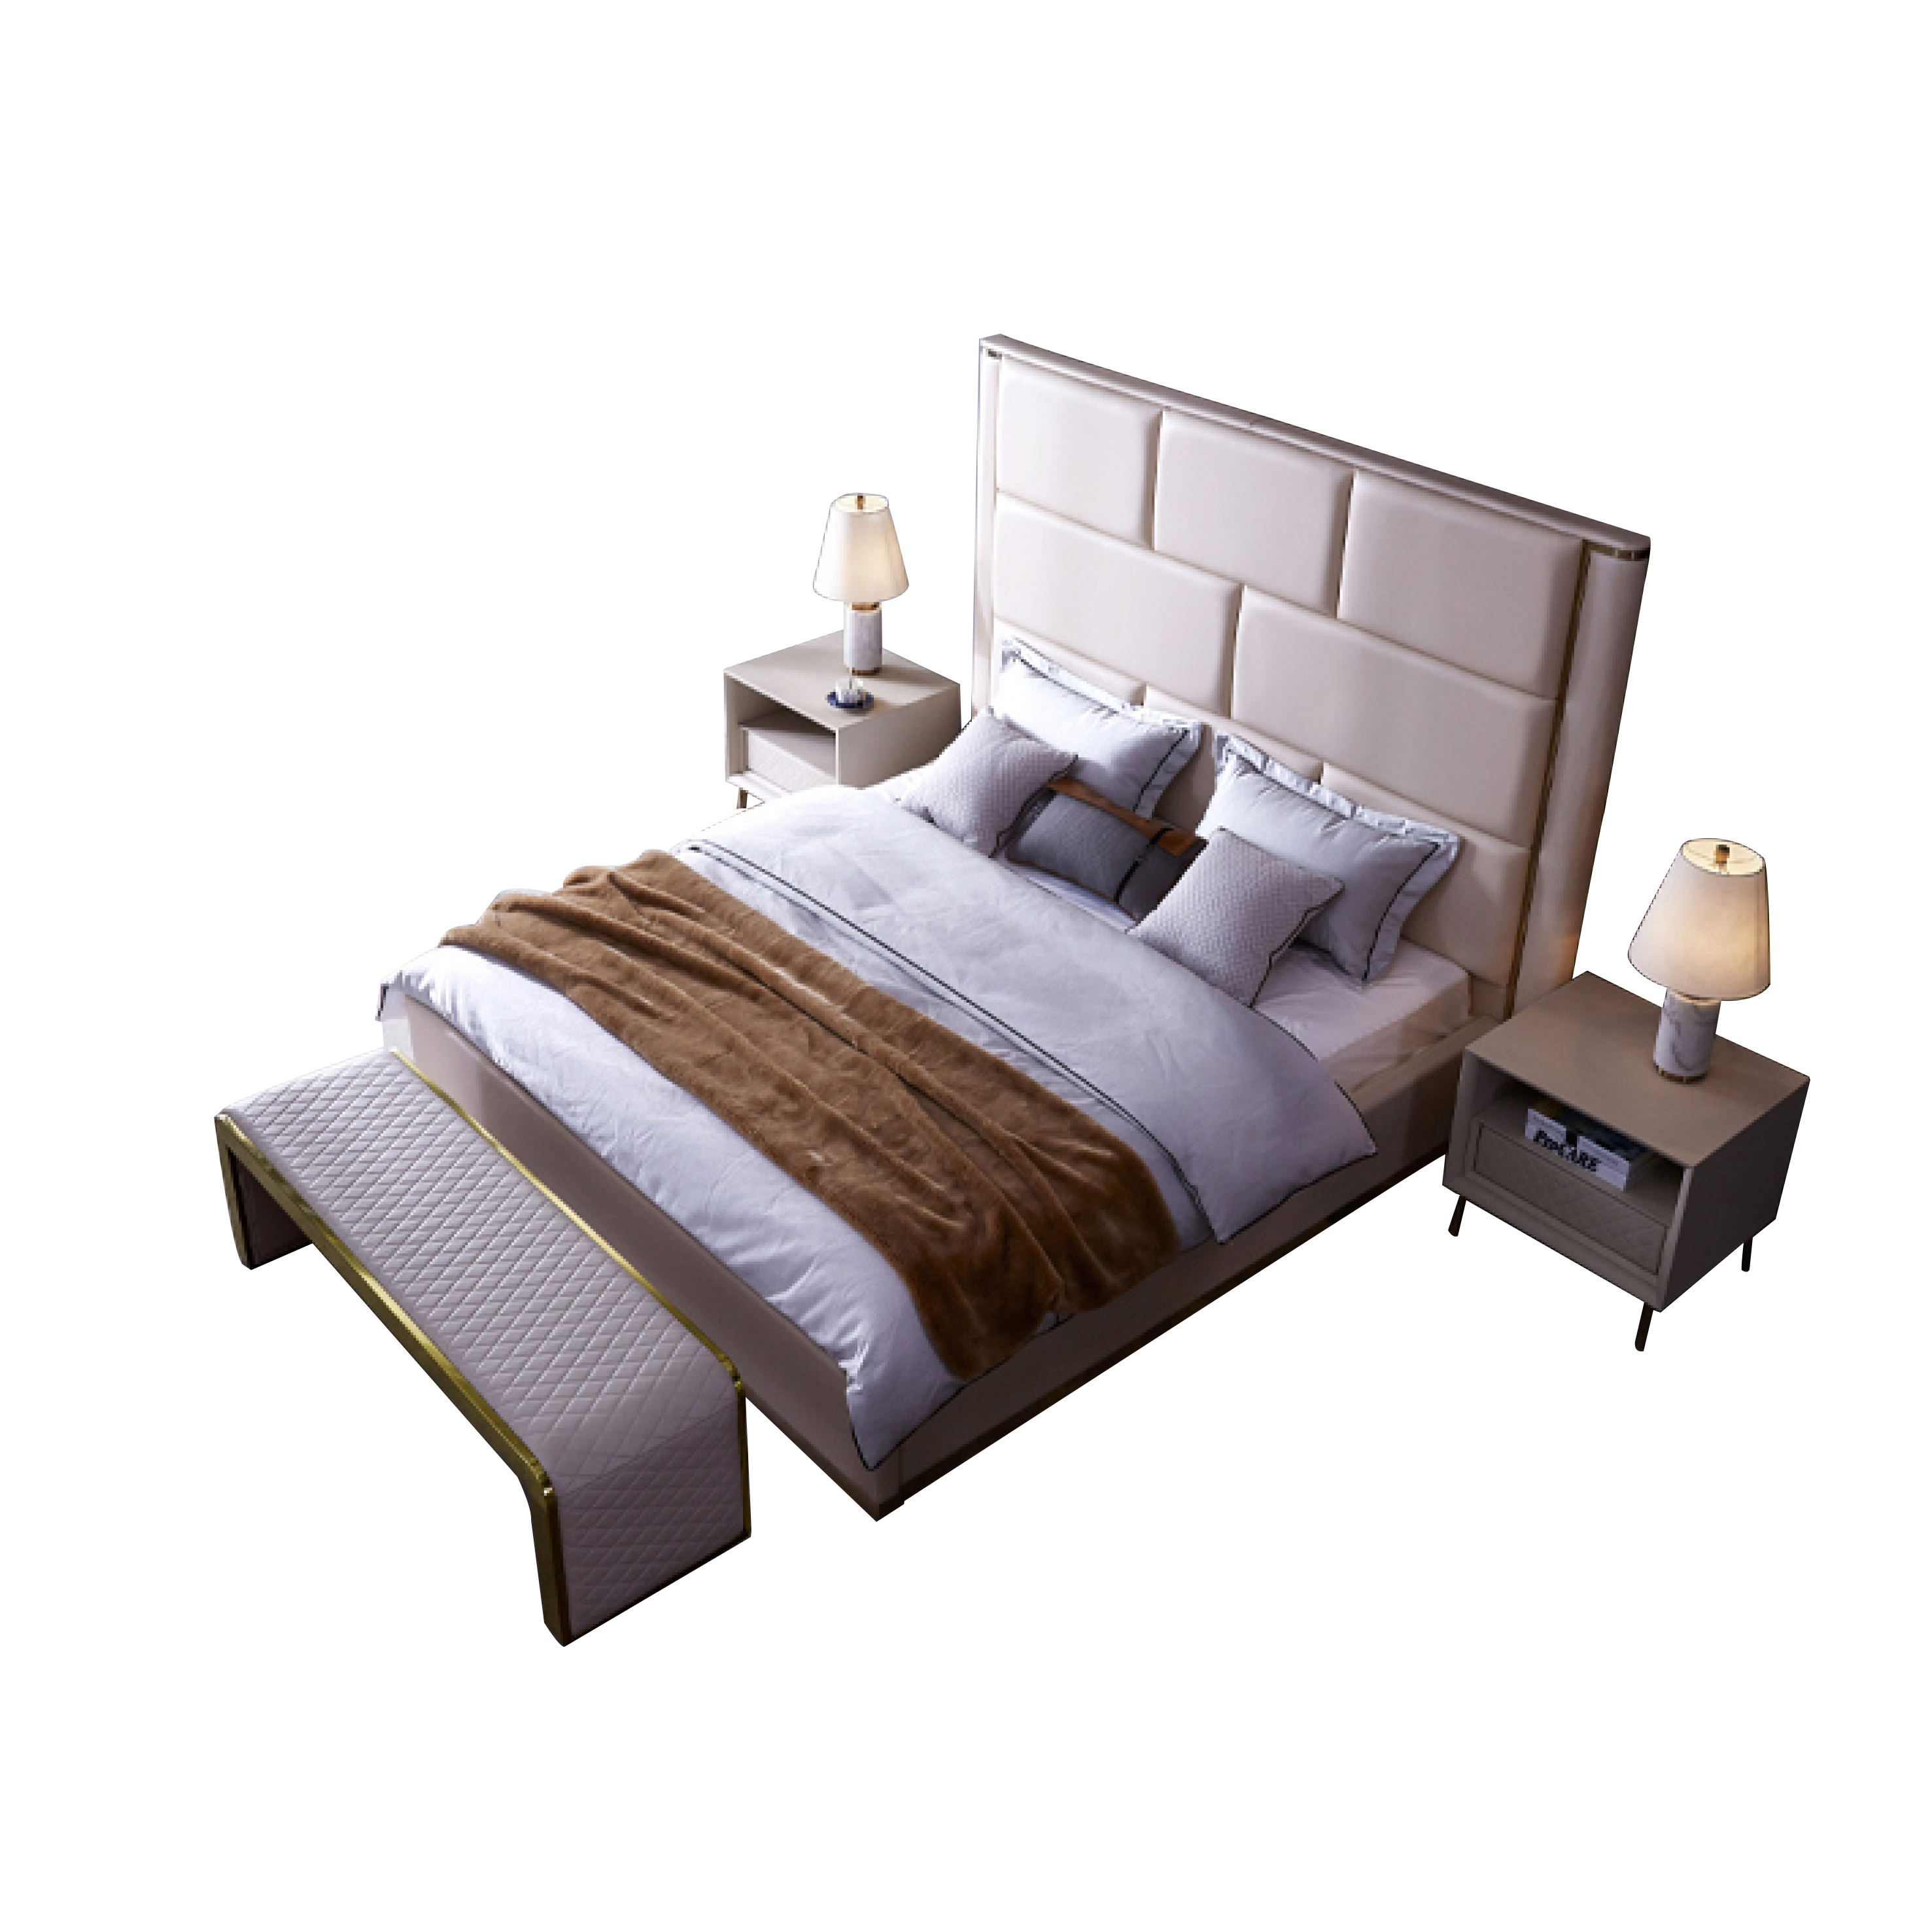 ProCARE pine solid wood frame double bed light luxury style romantic platform beds